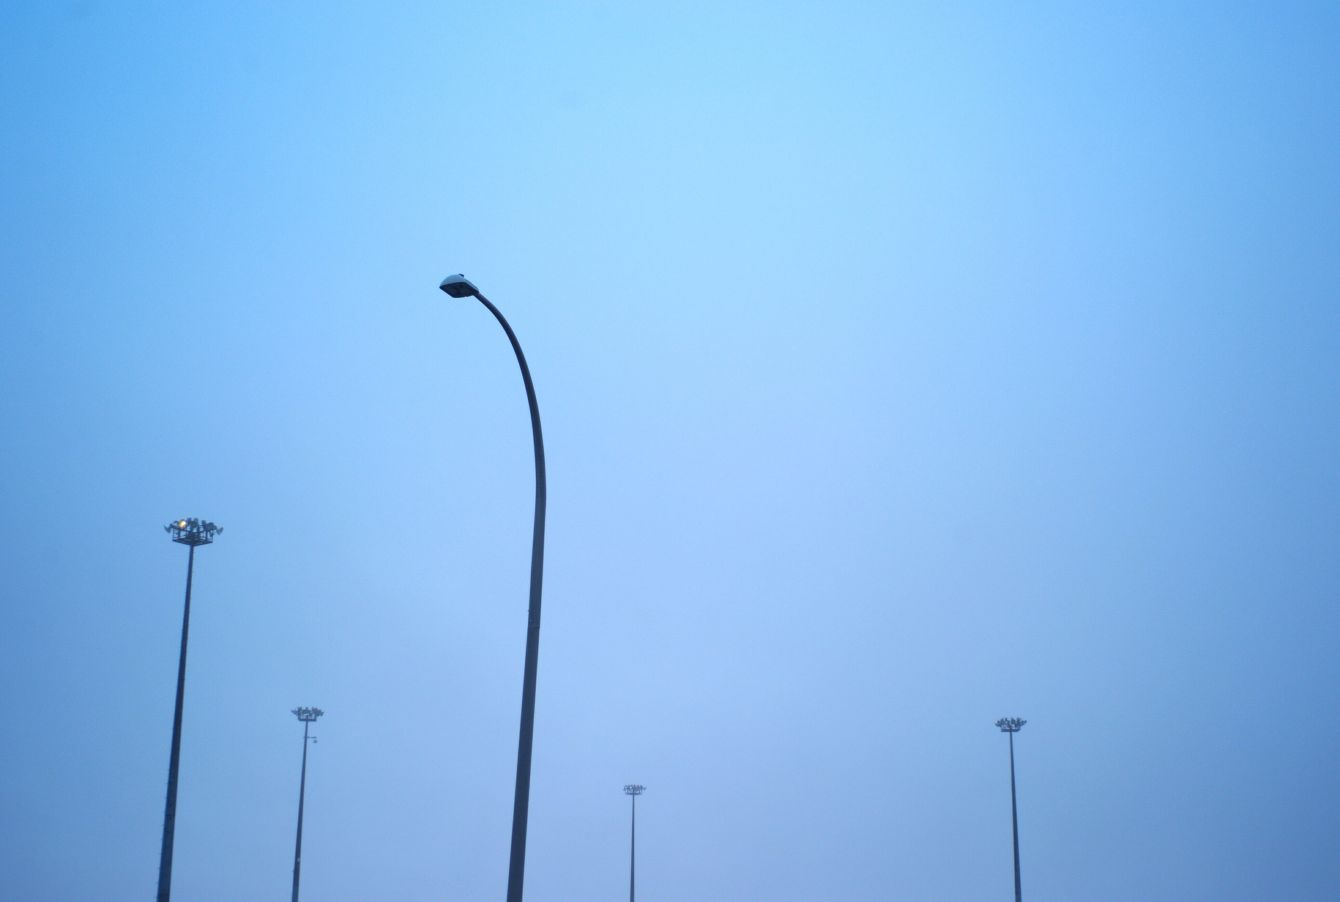 Click thumbnail to see details about photo - Port Parking Lot Lights in Saint John Photograph